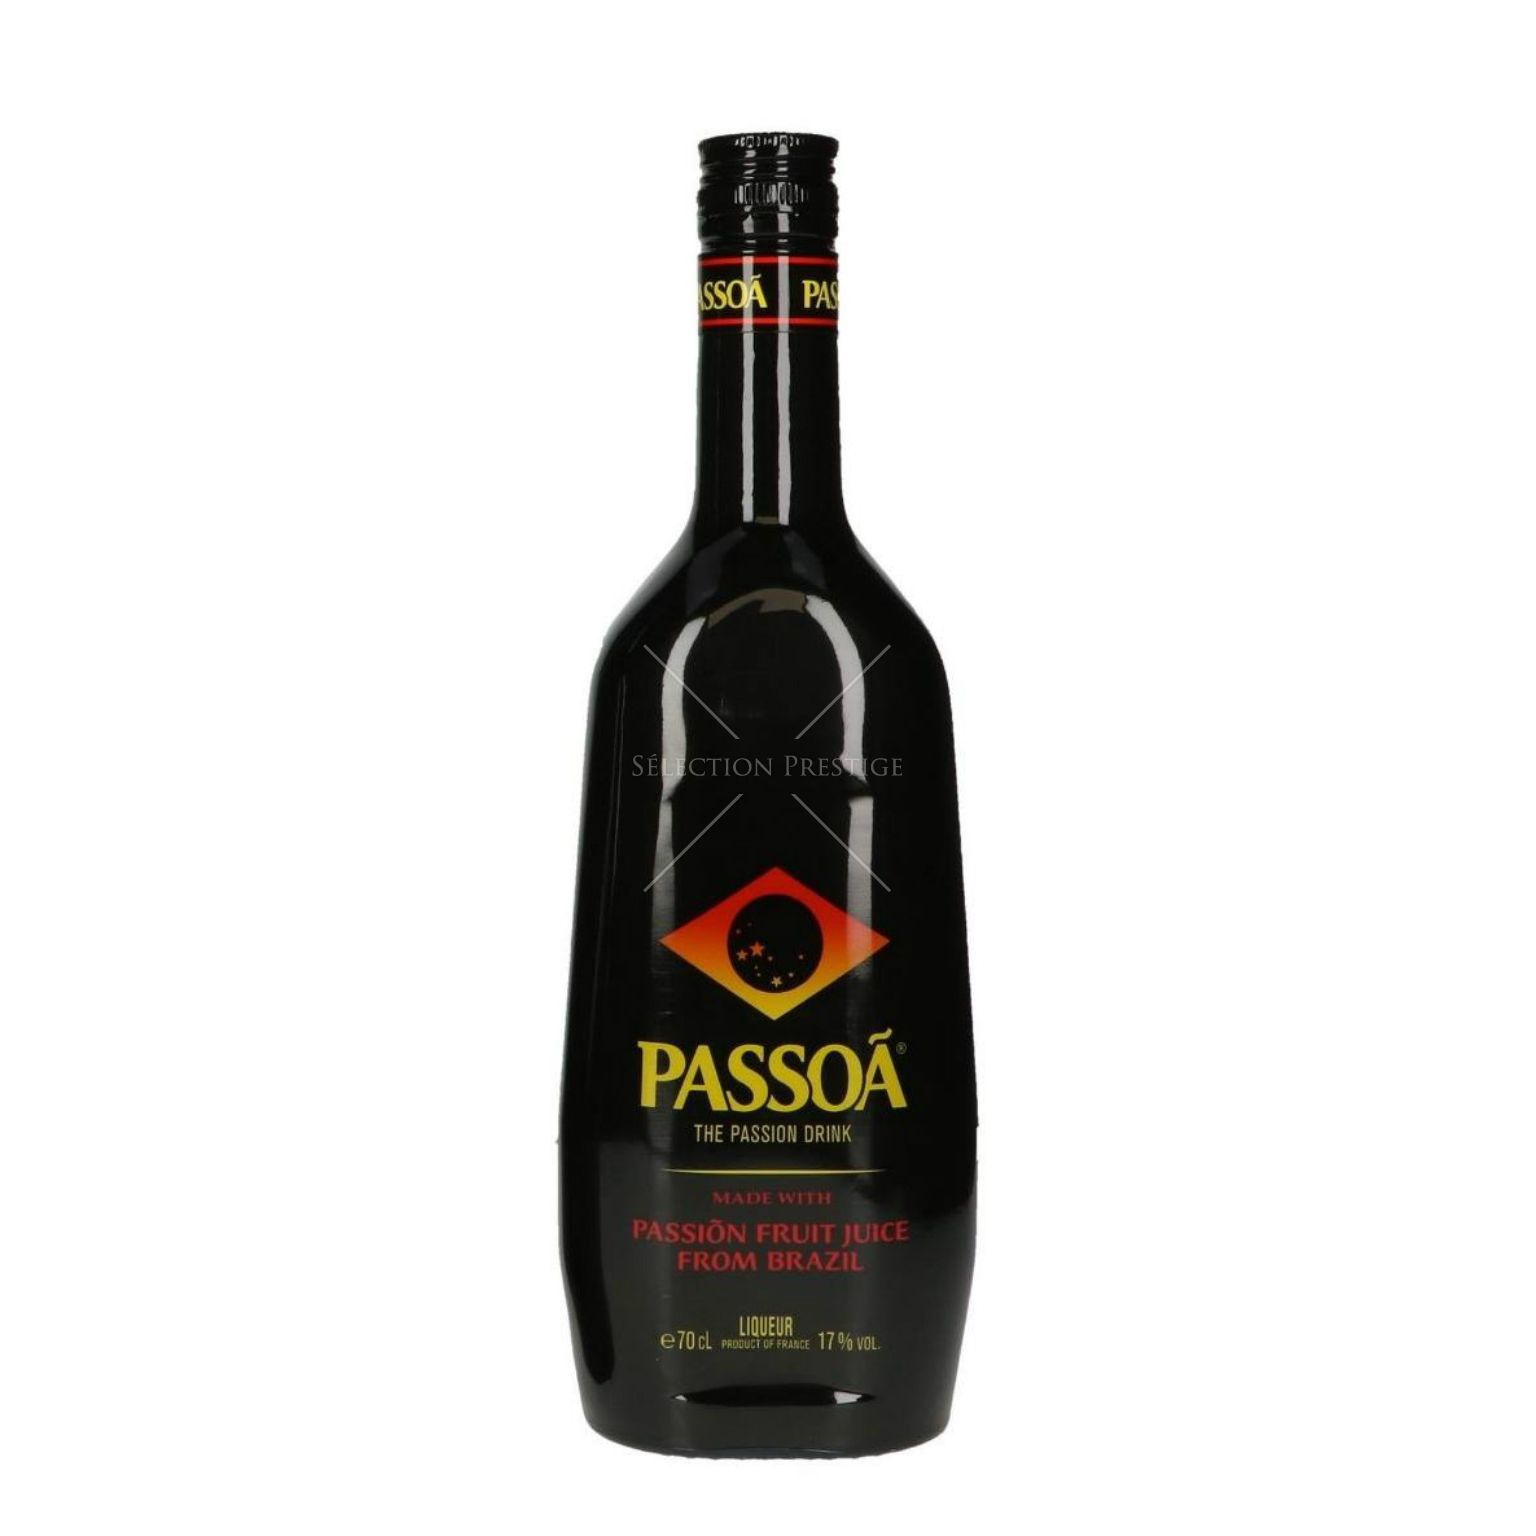 Passoã Passion Fruits Liqueur 1.0L (17% Vol.)